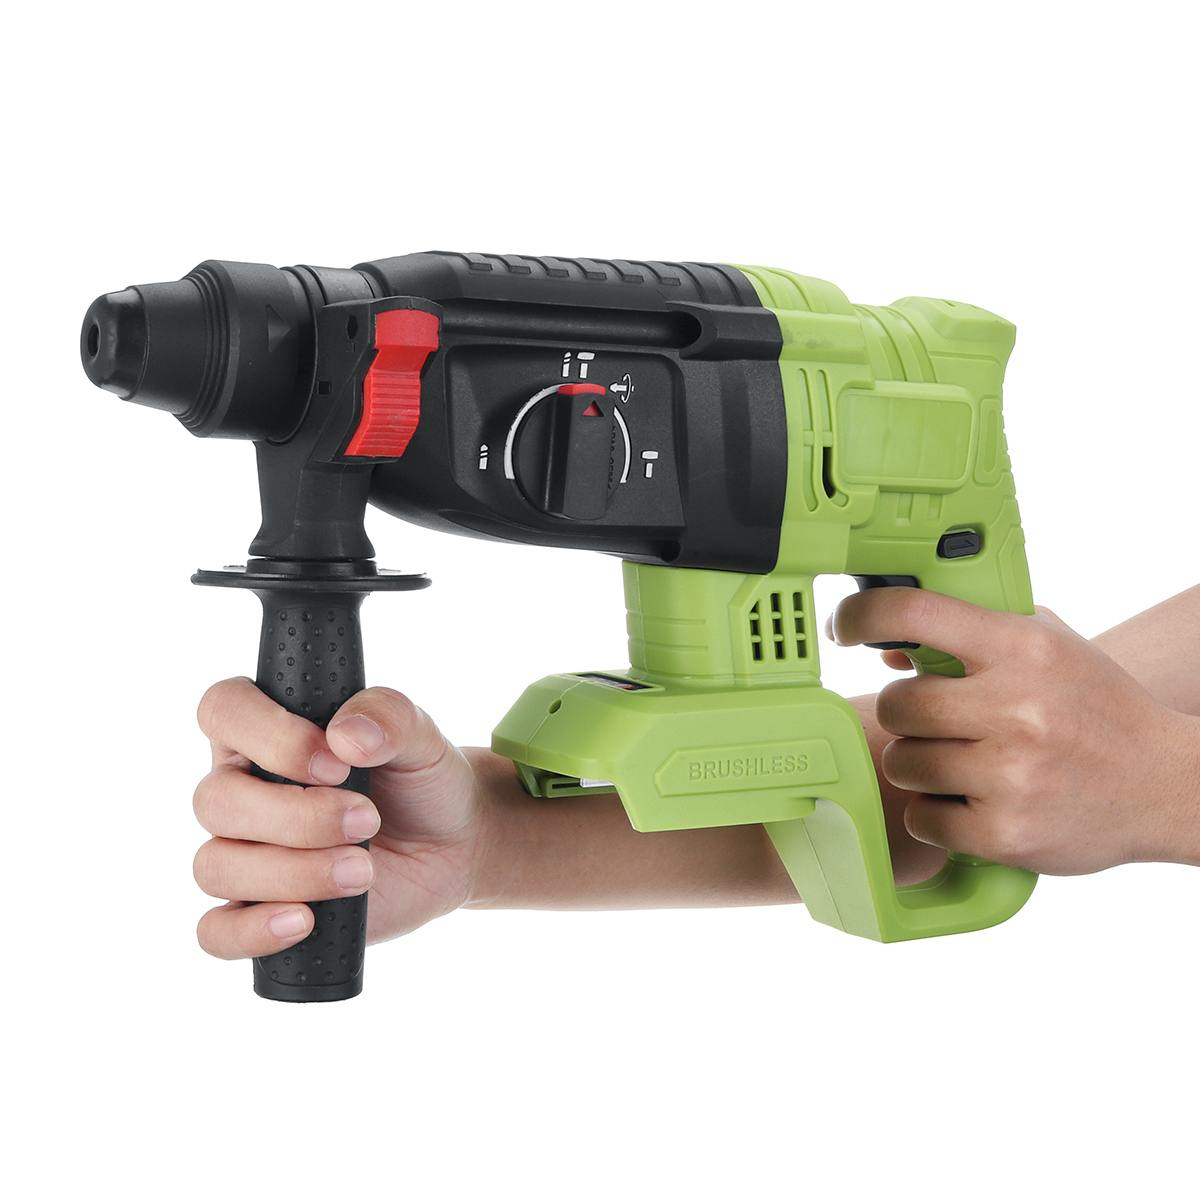 Brushless Electric Hammer Cordless Hammer Drill 1200W Concrete Breaker Punch Jackhammer Power Drill Tool For Makita 18V Battery